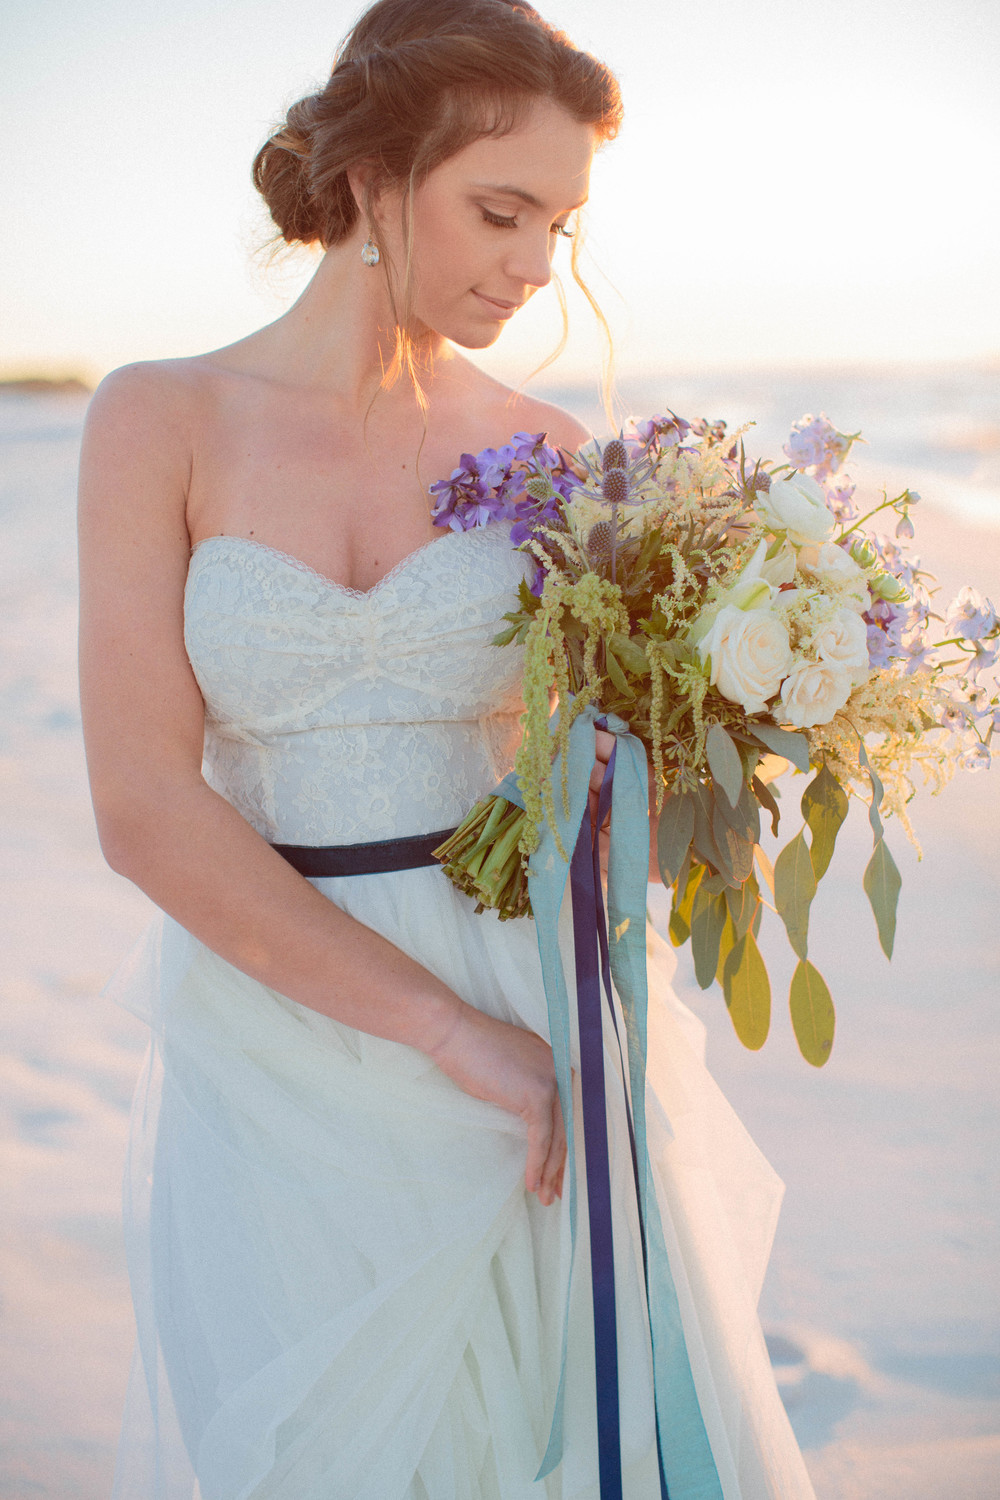 Ais-Portraits-ivey-weddings-and-events-ivory-and-beau-bridal-boutique-sunrise-wedding-sunrise-bridal-session-blue-dress-rebecca-schoneveld-wedding-dress-blue-velvet-wedding-beach-wedding-savannah-bridal-boutique-savannah-wedding-10.jpg